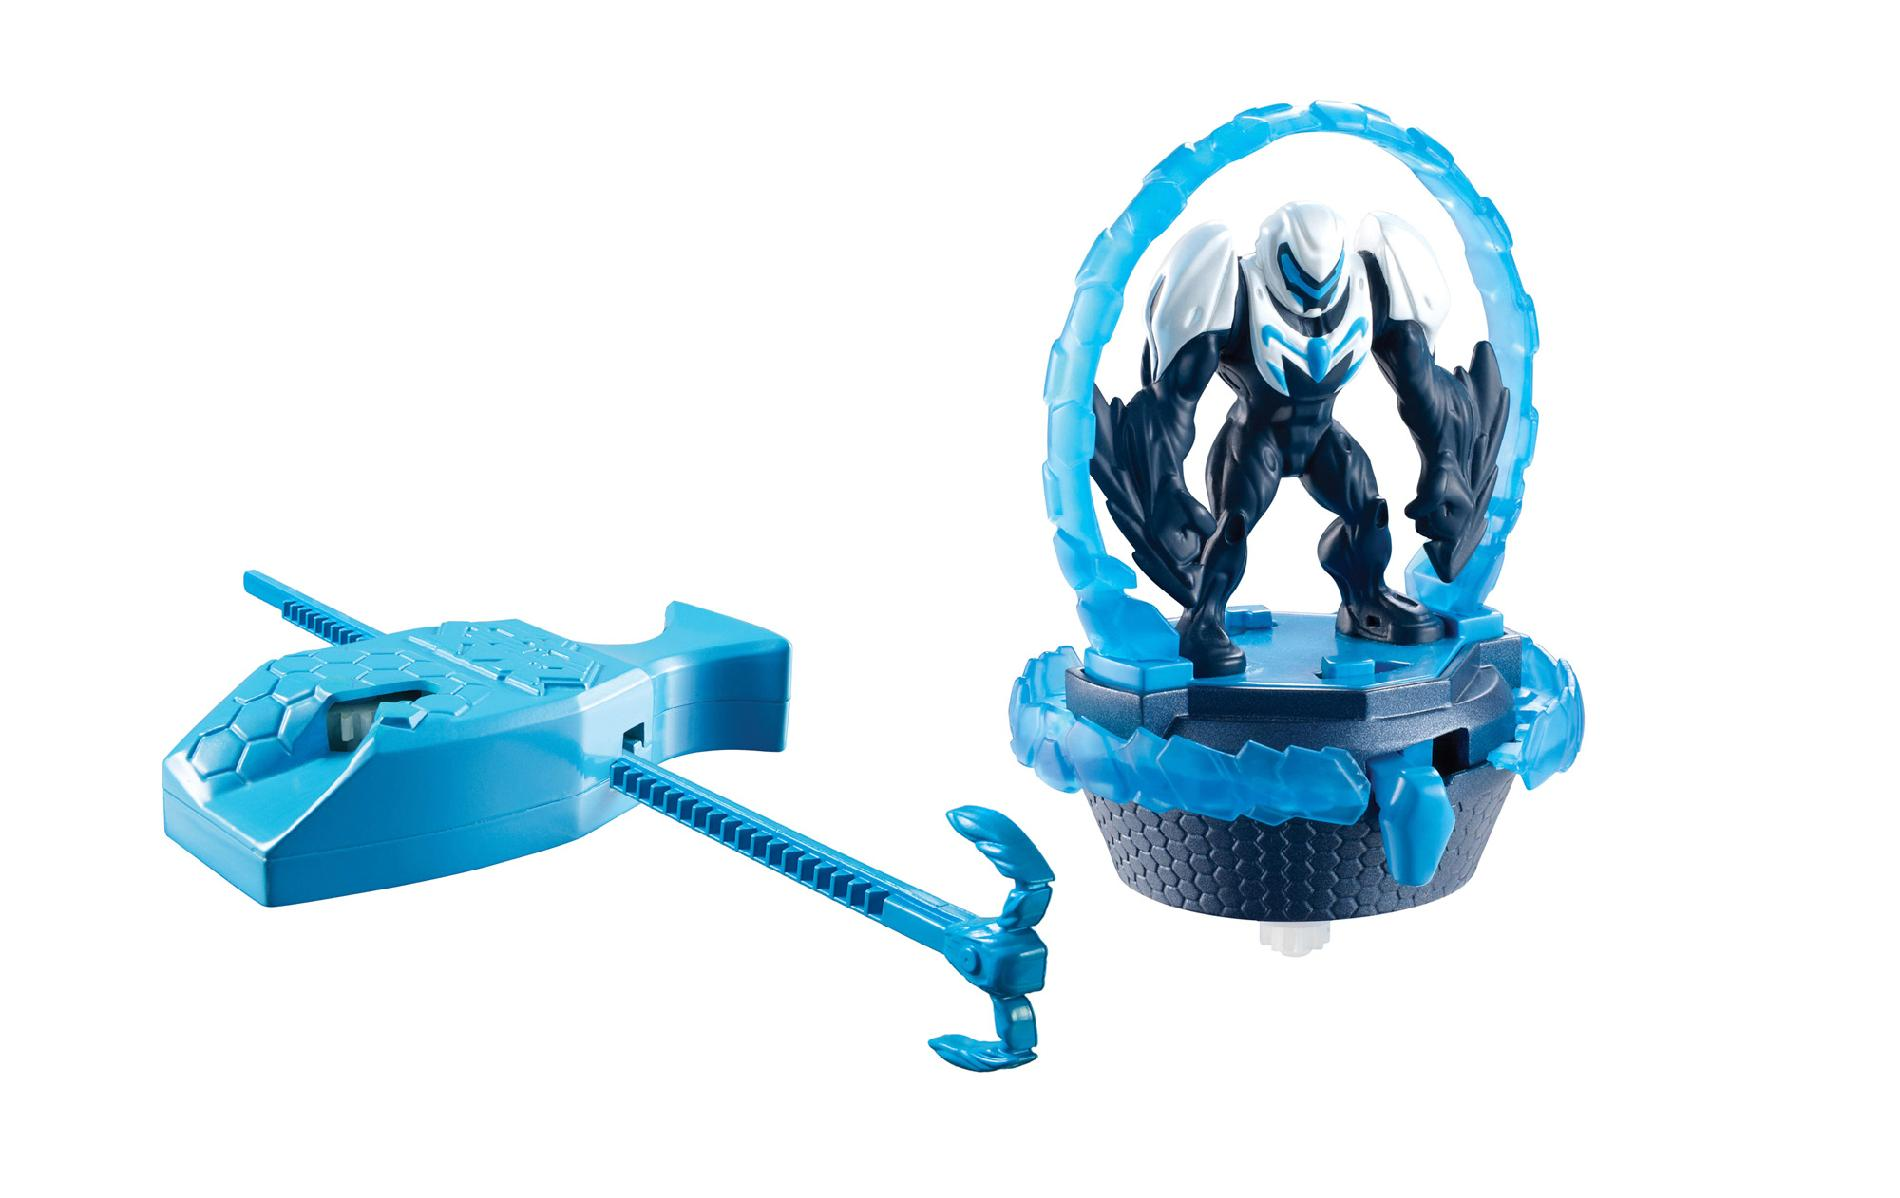 Max Steel Deluxe Turbo Battlers Turbo Strength Max Figure PartNumber: 004W005927930001P